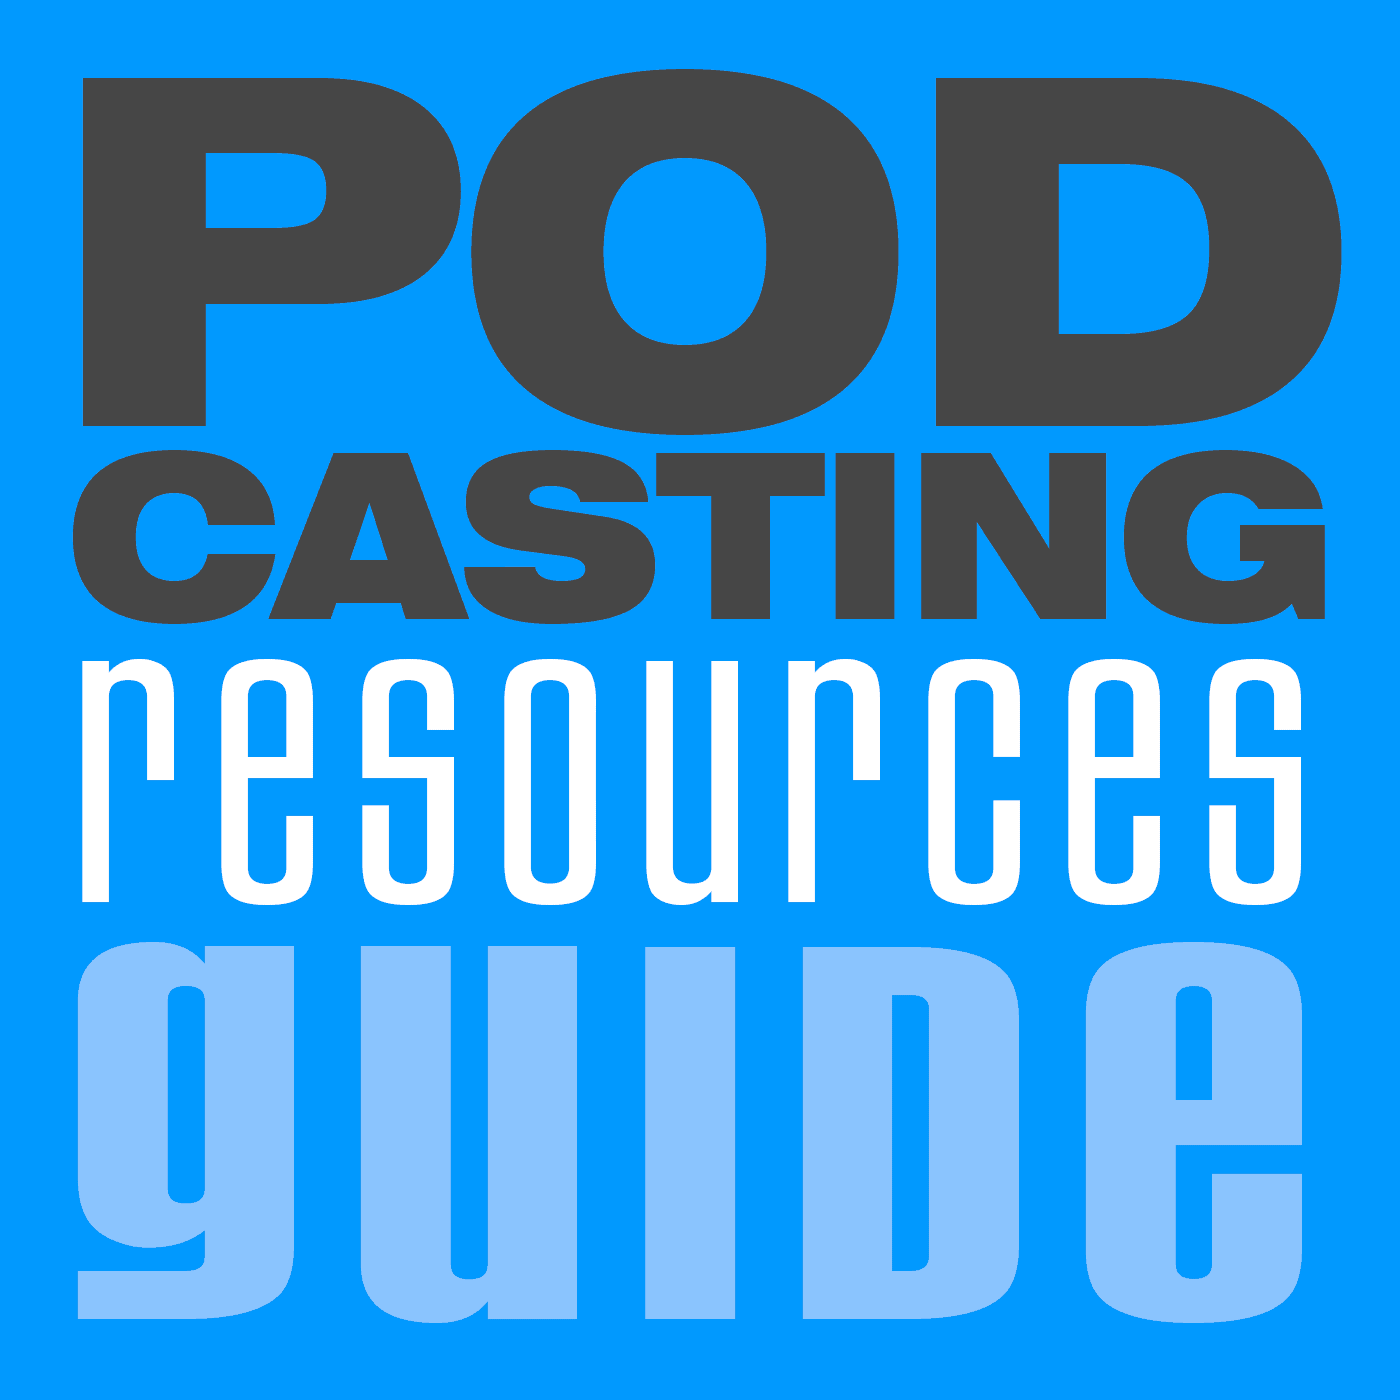 Podcasting Resources Guide 2.0